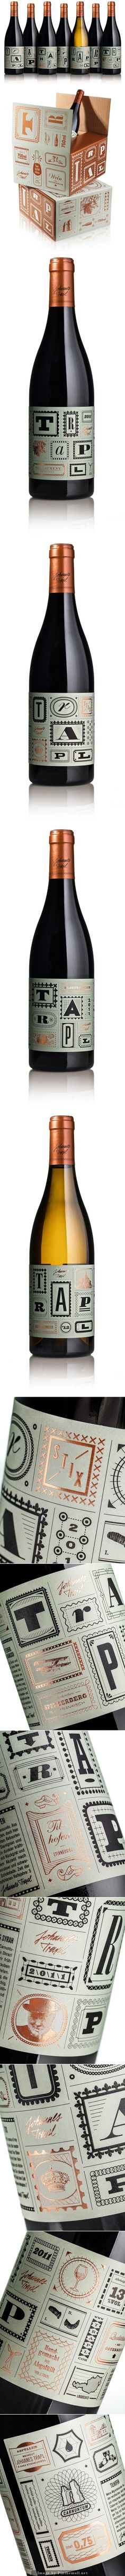 Trapl Wine by Typejockeys